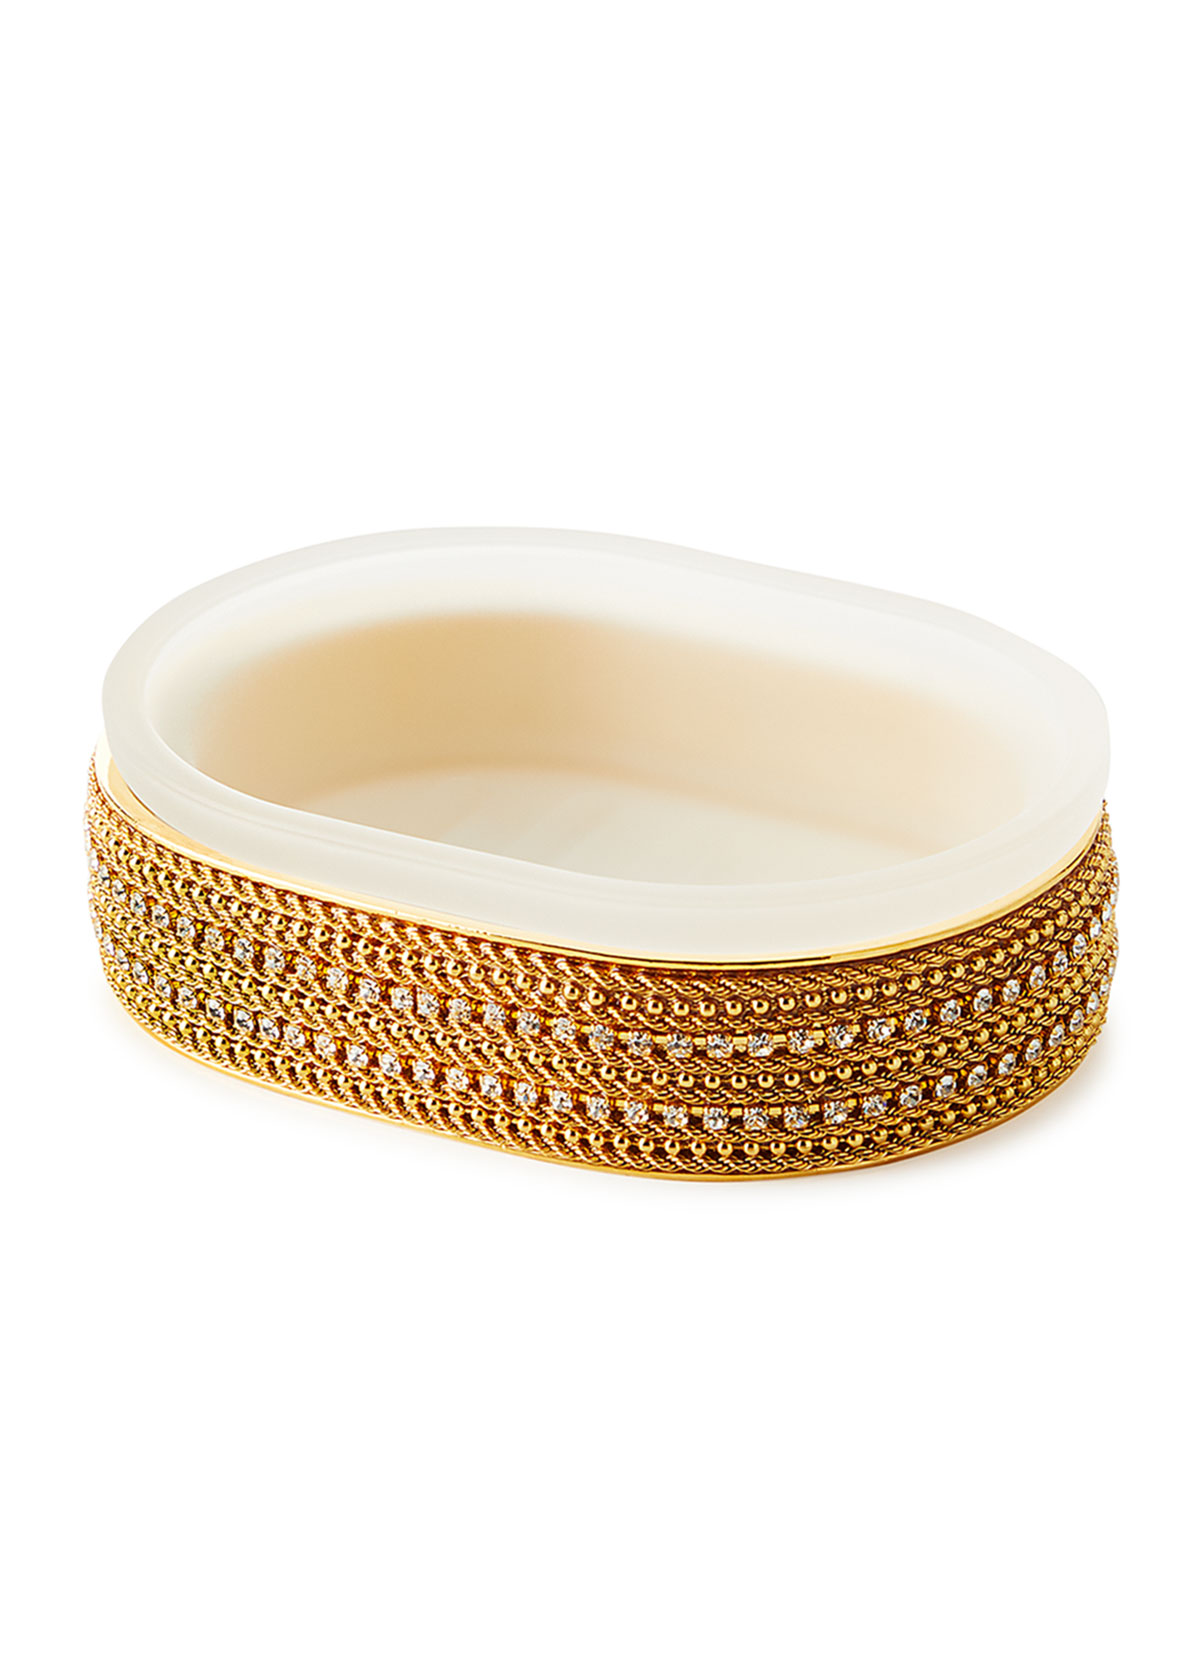 Mike & Ally ARCHIE SOLID CHAIN OVAL SOAP DISH